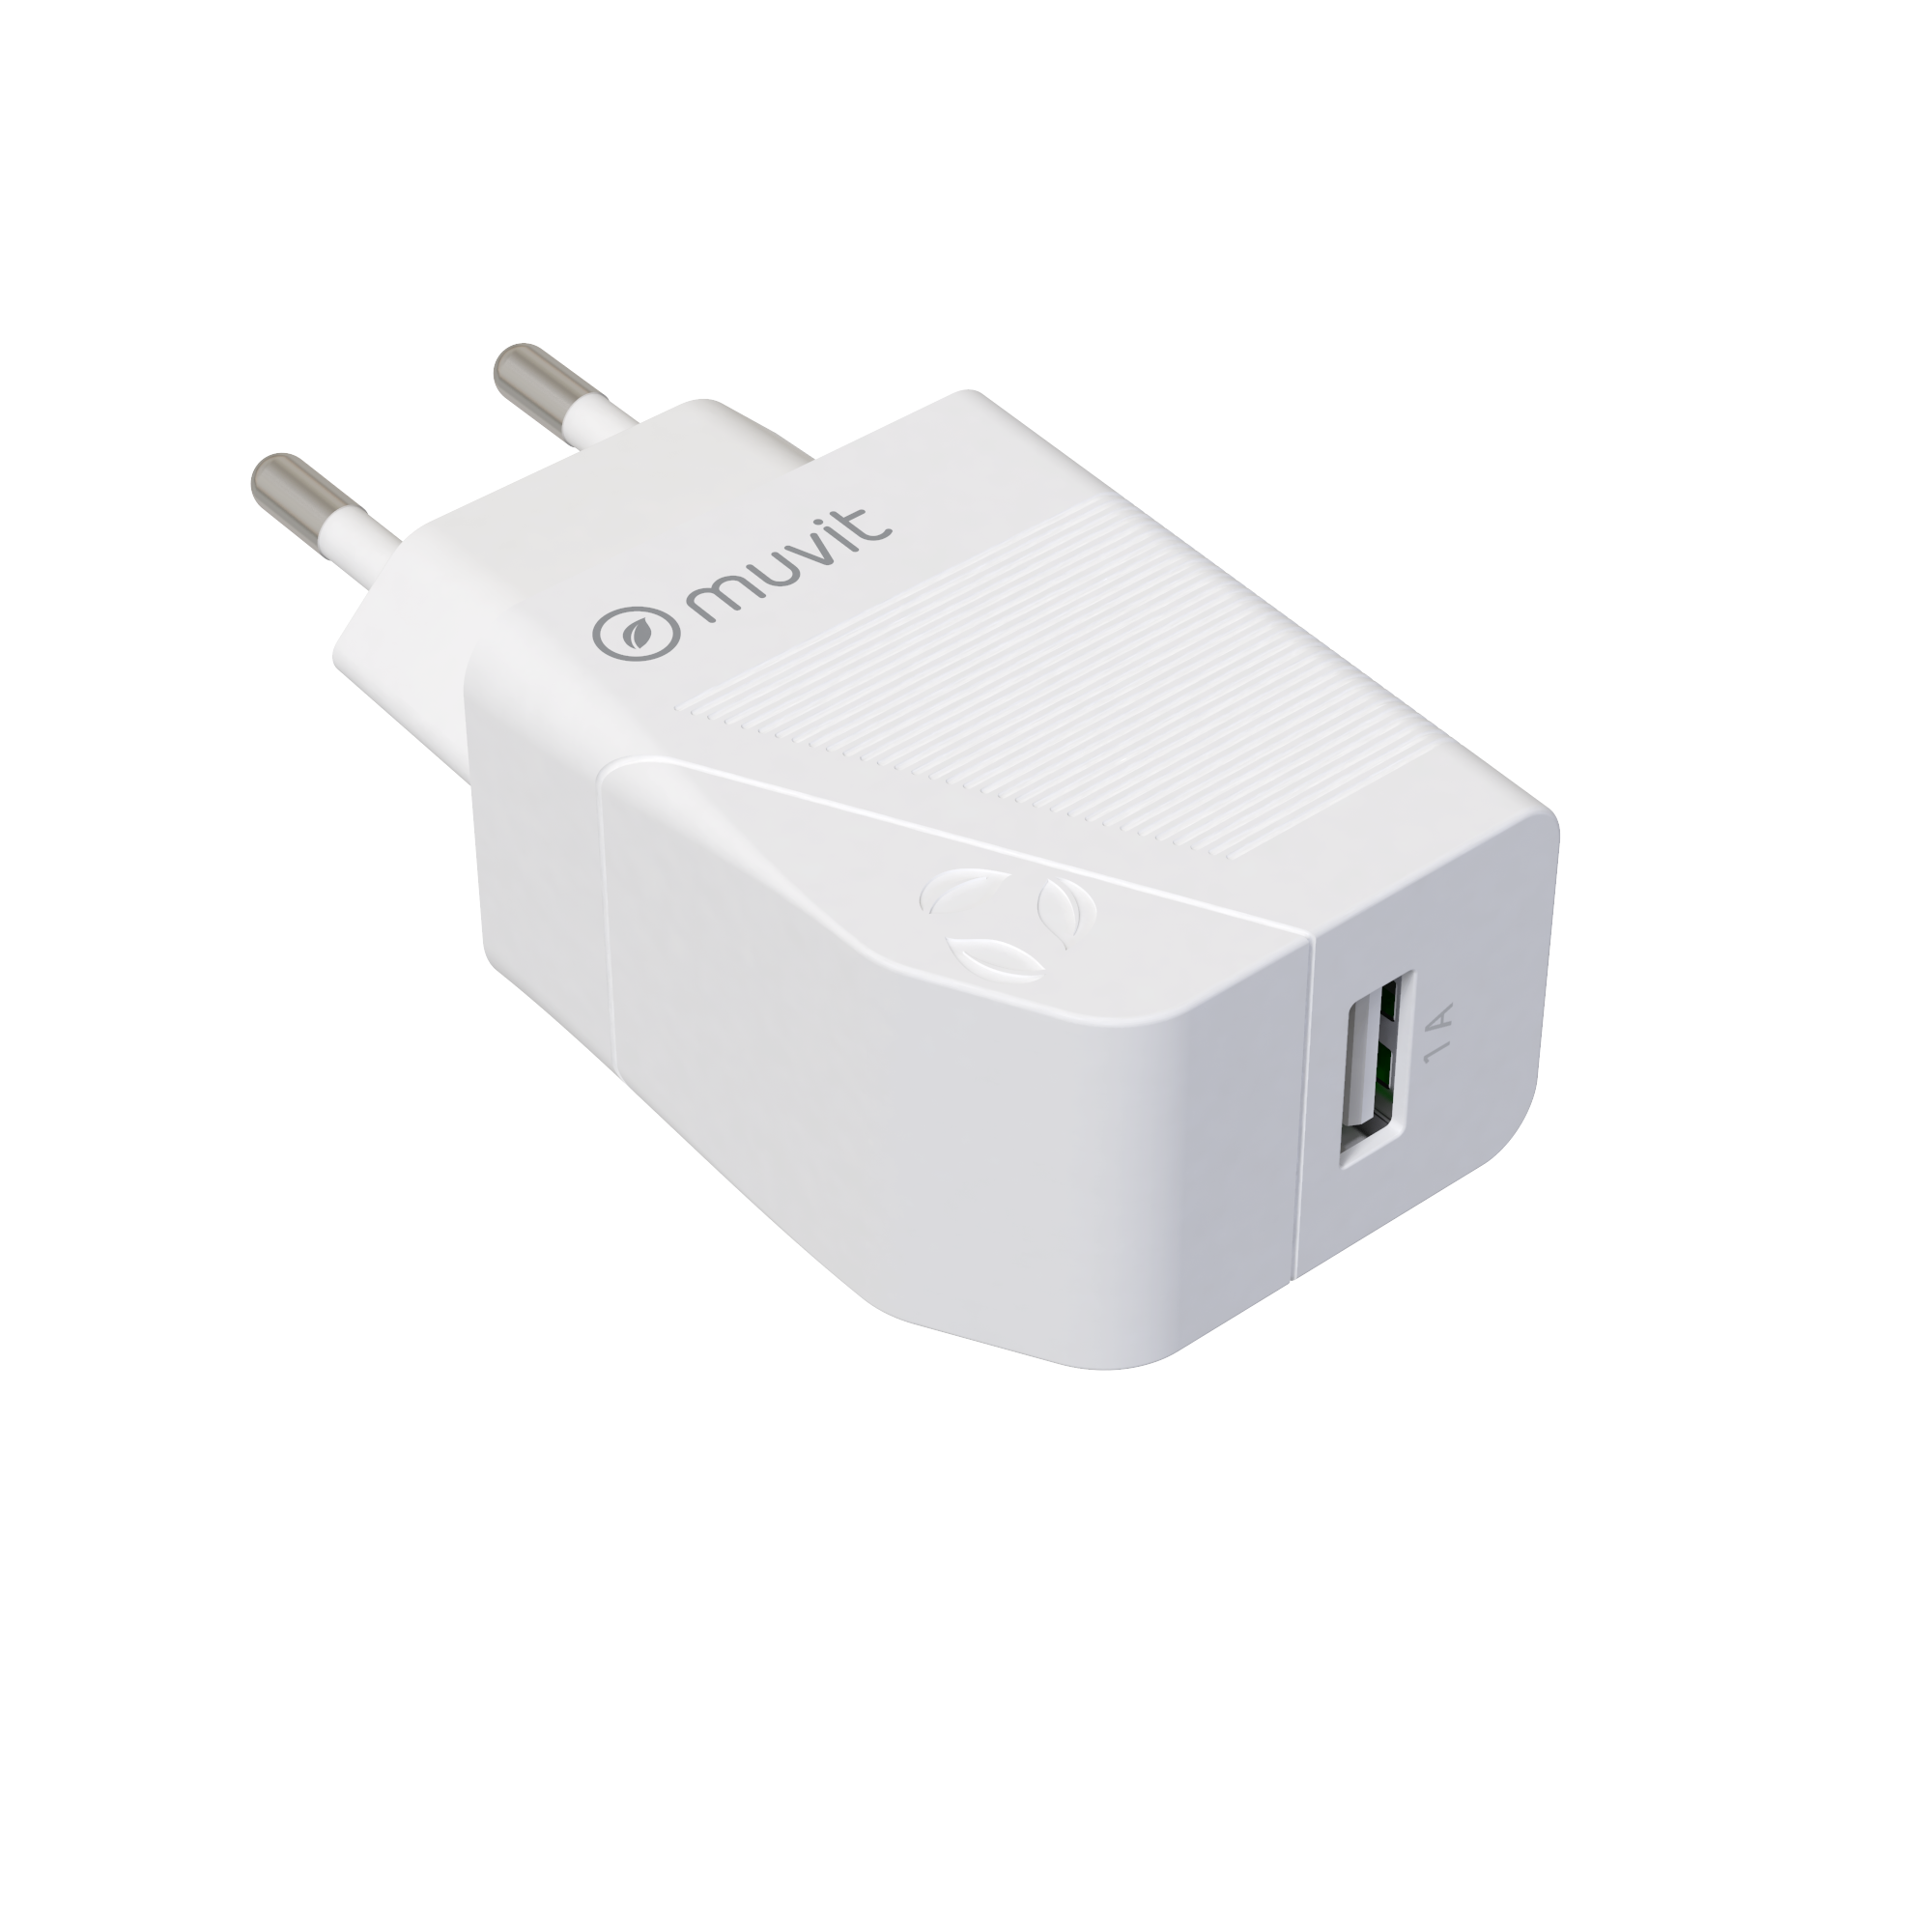 Wallcharger